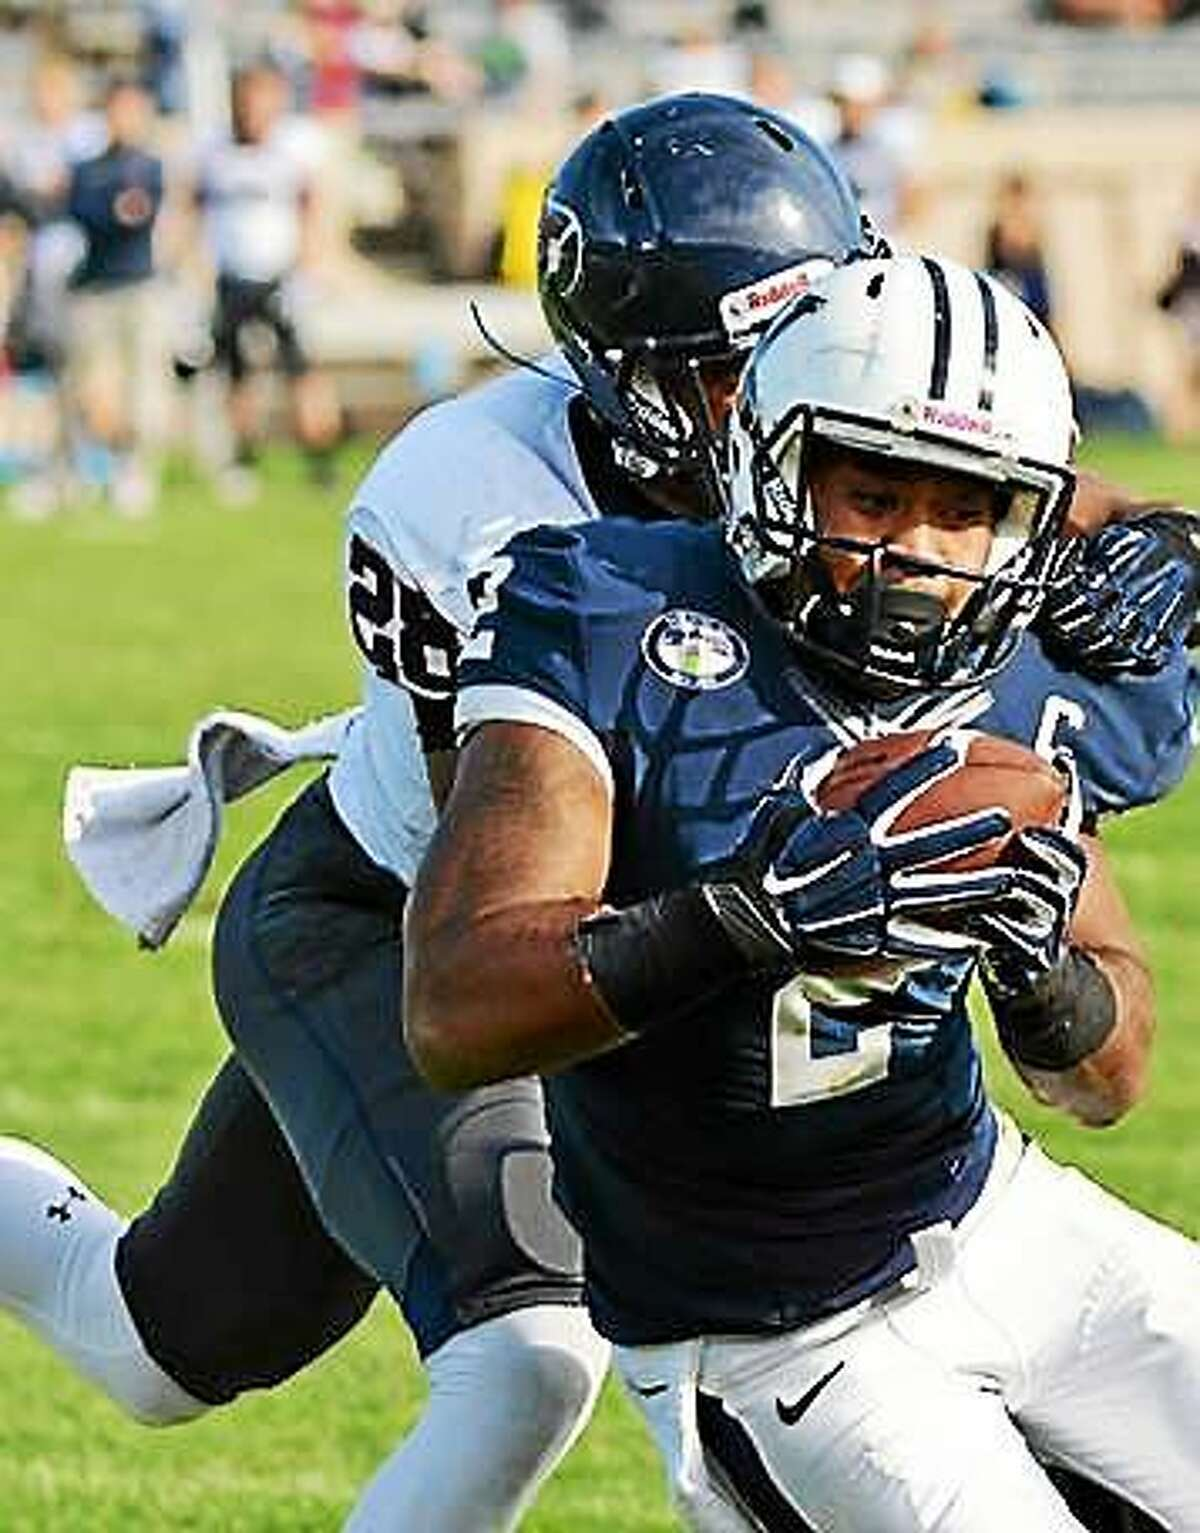 Yale receiver Deon Randall makes his 196th career reception to set the program record during Saturday's 43-21 win over Penn at Yale Bowl.